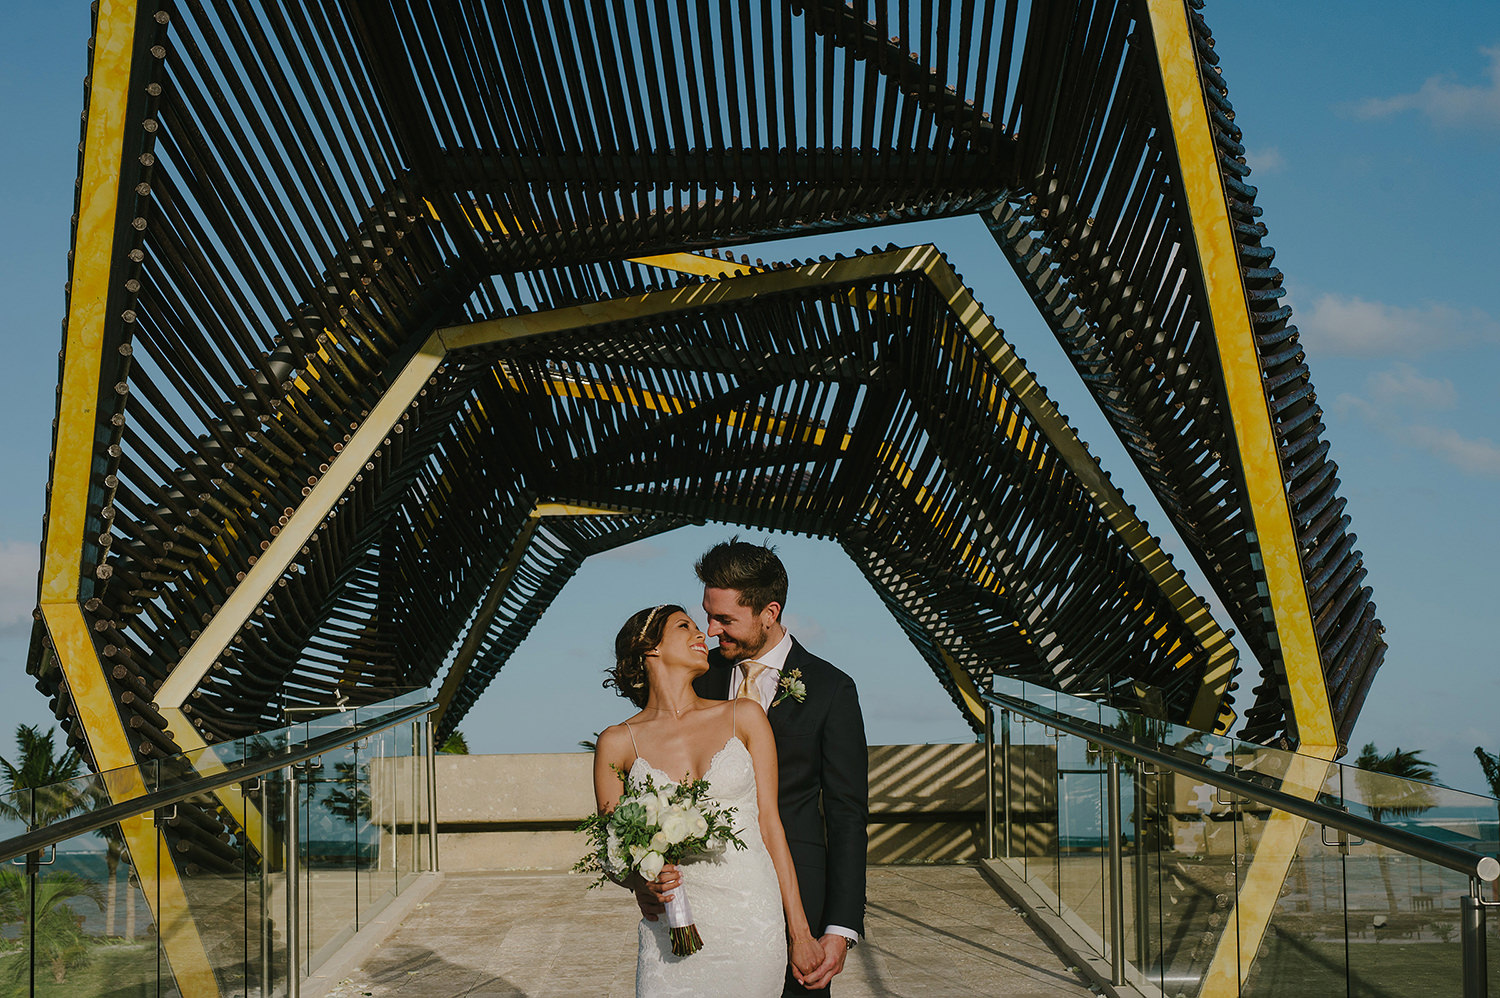 CherylReed_Wedding_Kape_Photography_WeddingPhotography_Mexico_Boda_Fotografia_Royalton_Hideway_Cancun_RivieraMaya_PlayadelCarmen_Beach_429FB_BLOG.jpg